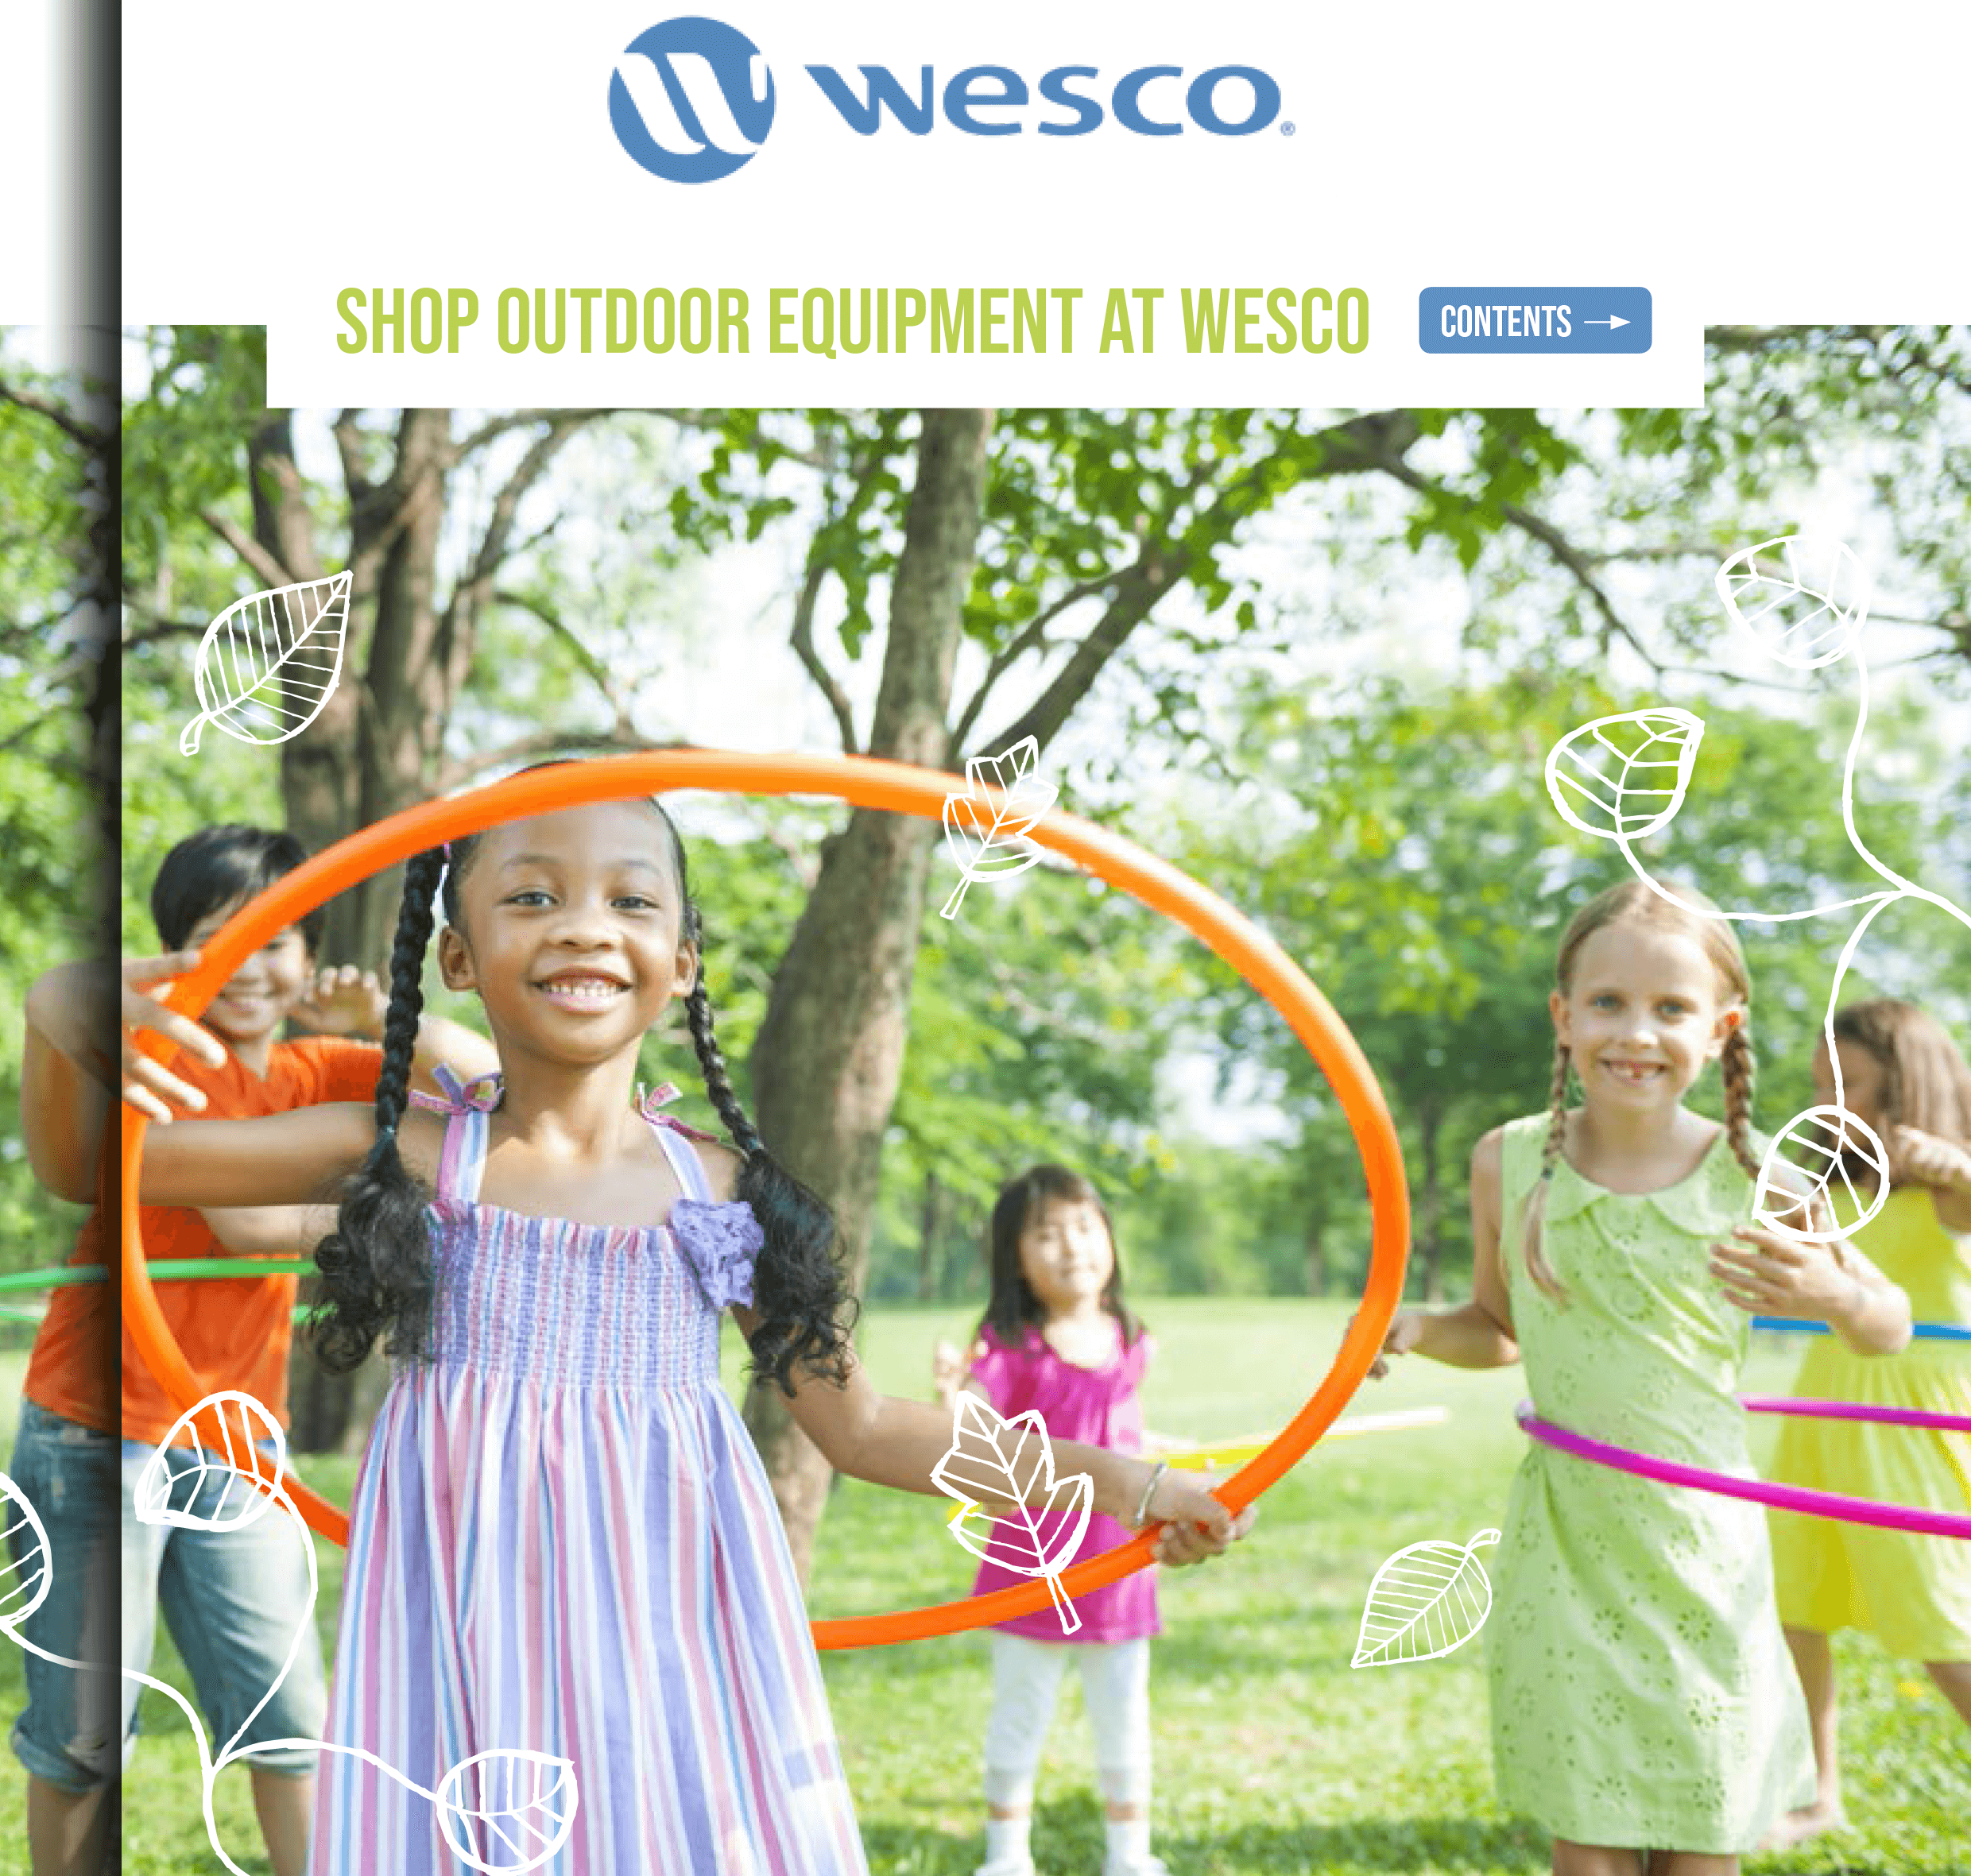 Outdoor Equipment at Wesco